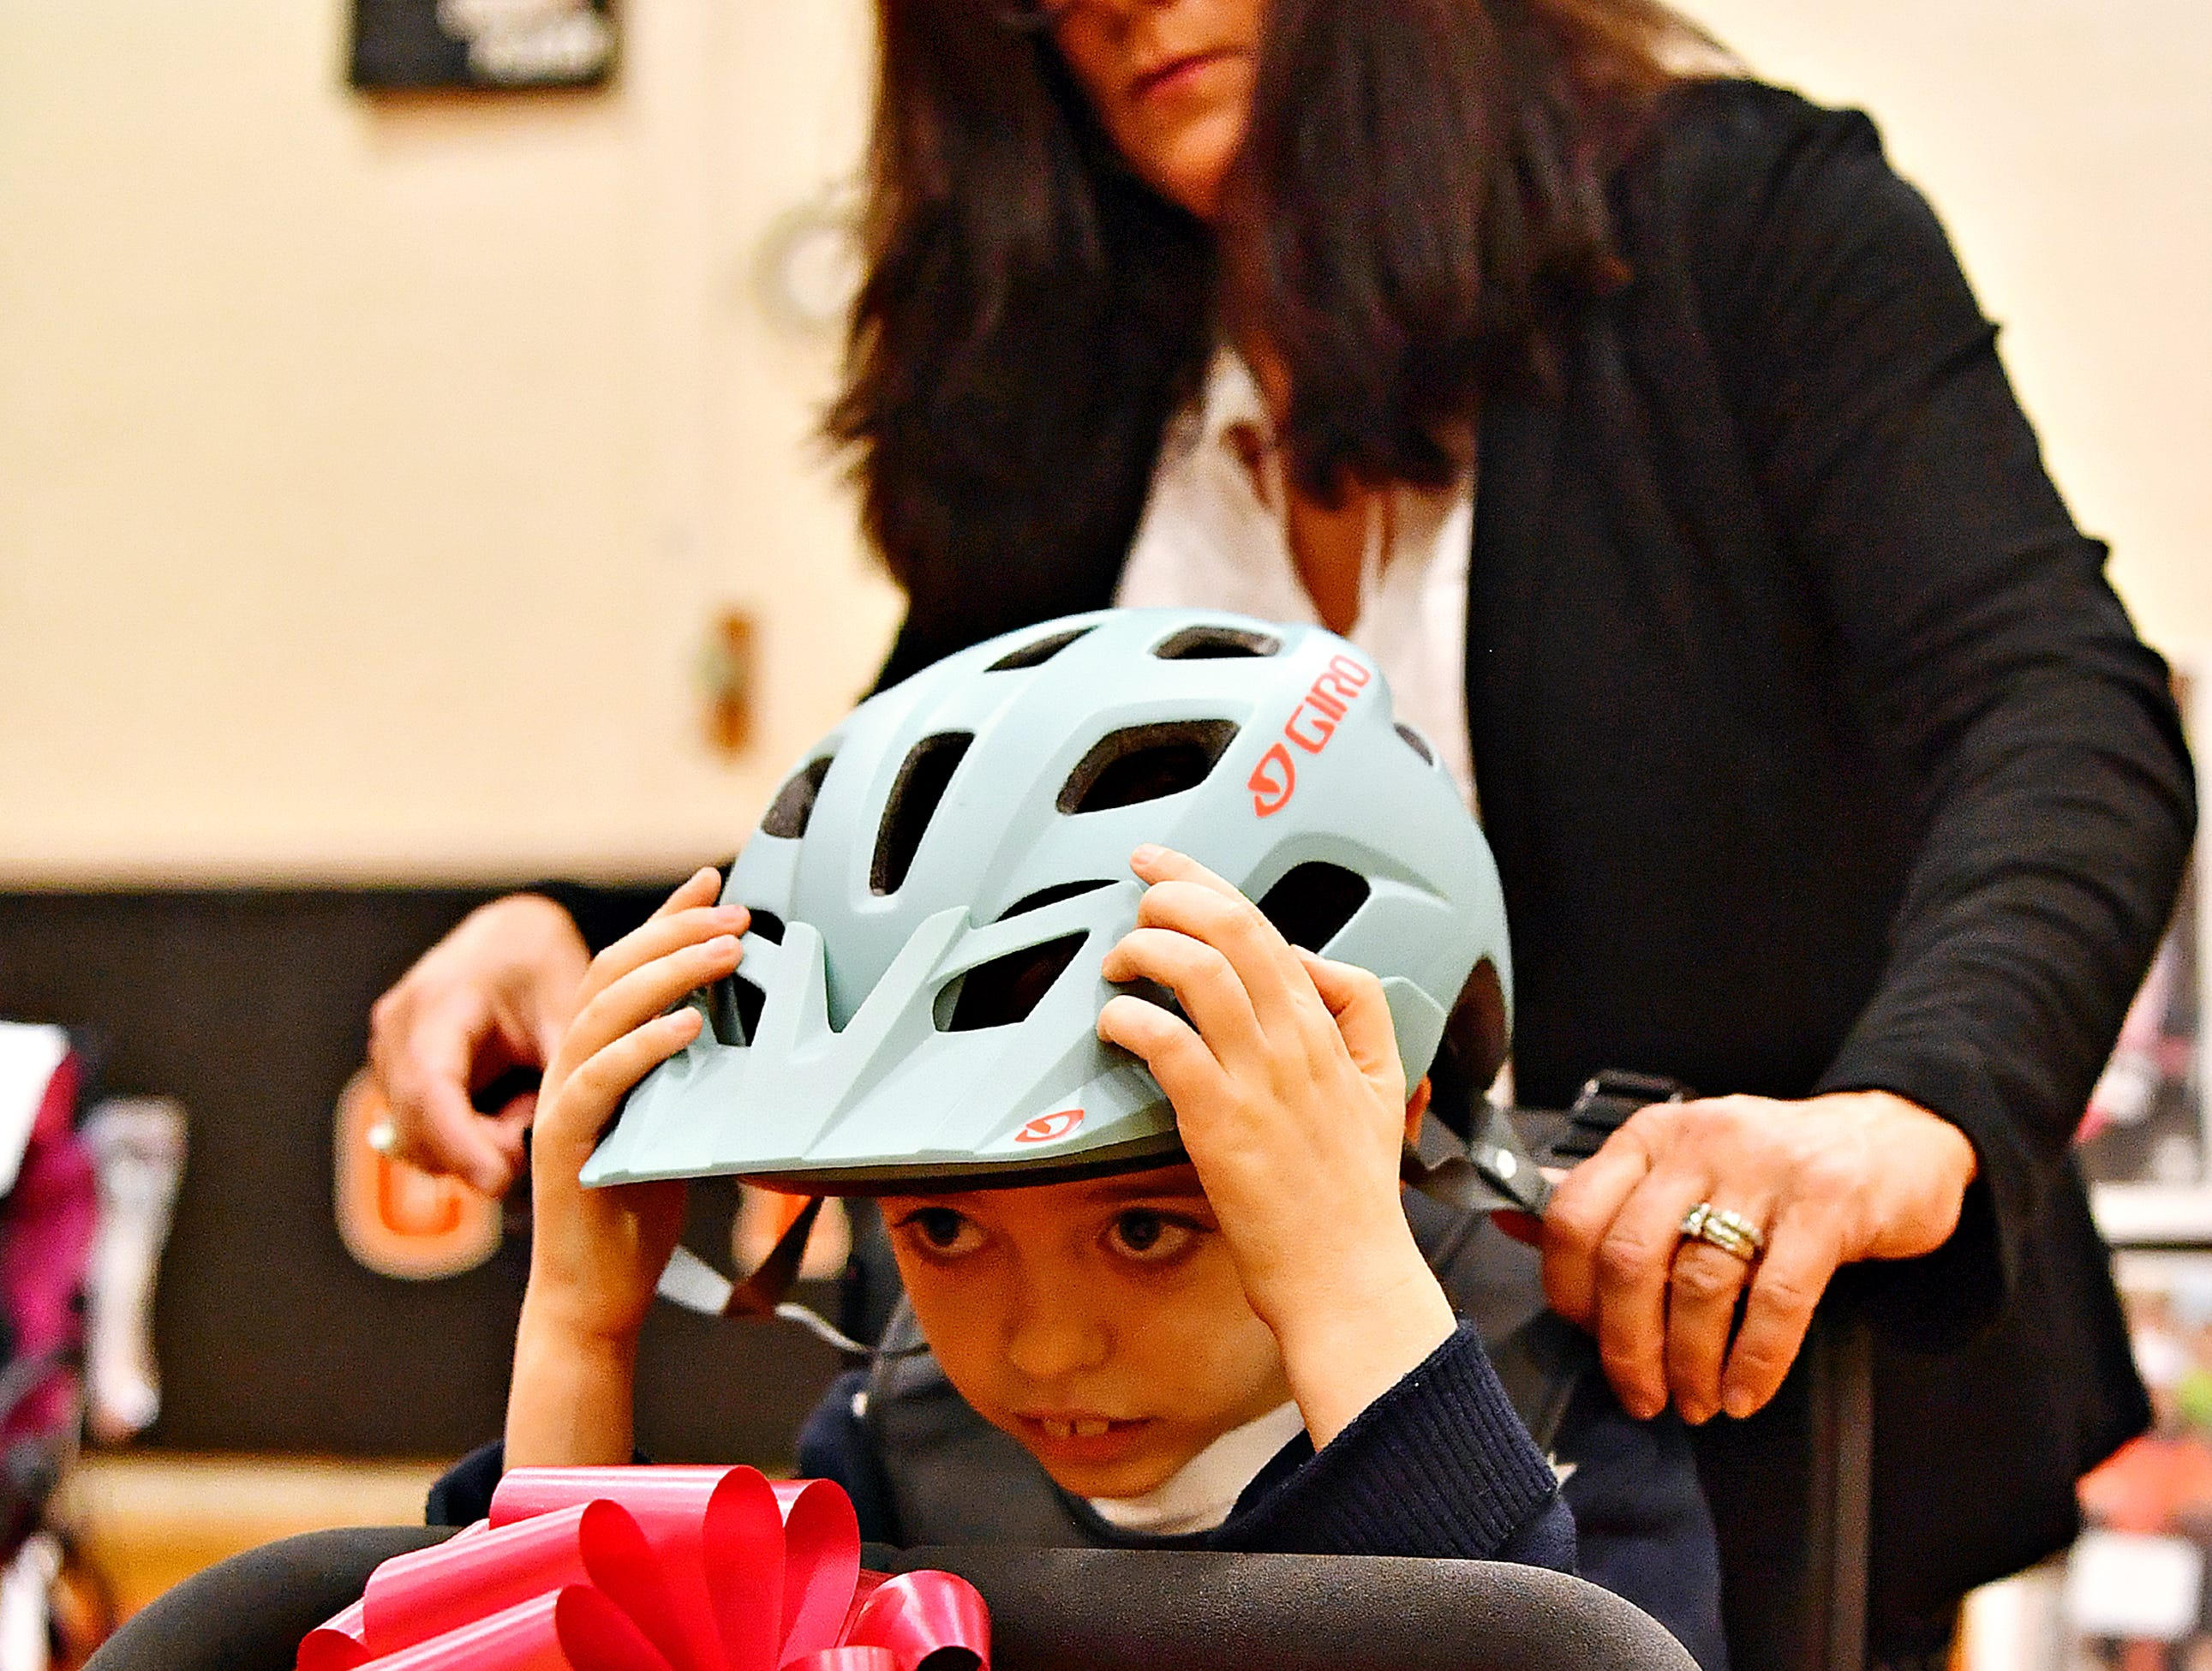 Christian Glass, 9, of Conewago Township in Adams County, secures his helmet as his mother Lisa Glass adjusts his adaptable bicycle as Variety, the Children's Charity, based in Pittsburg, presents adaptable equipment and communication devices to children with disabilities at York Learning Center in North York, Tuesday, May 14, 2019. Dawn J. Sagert photo